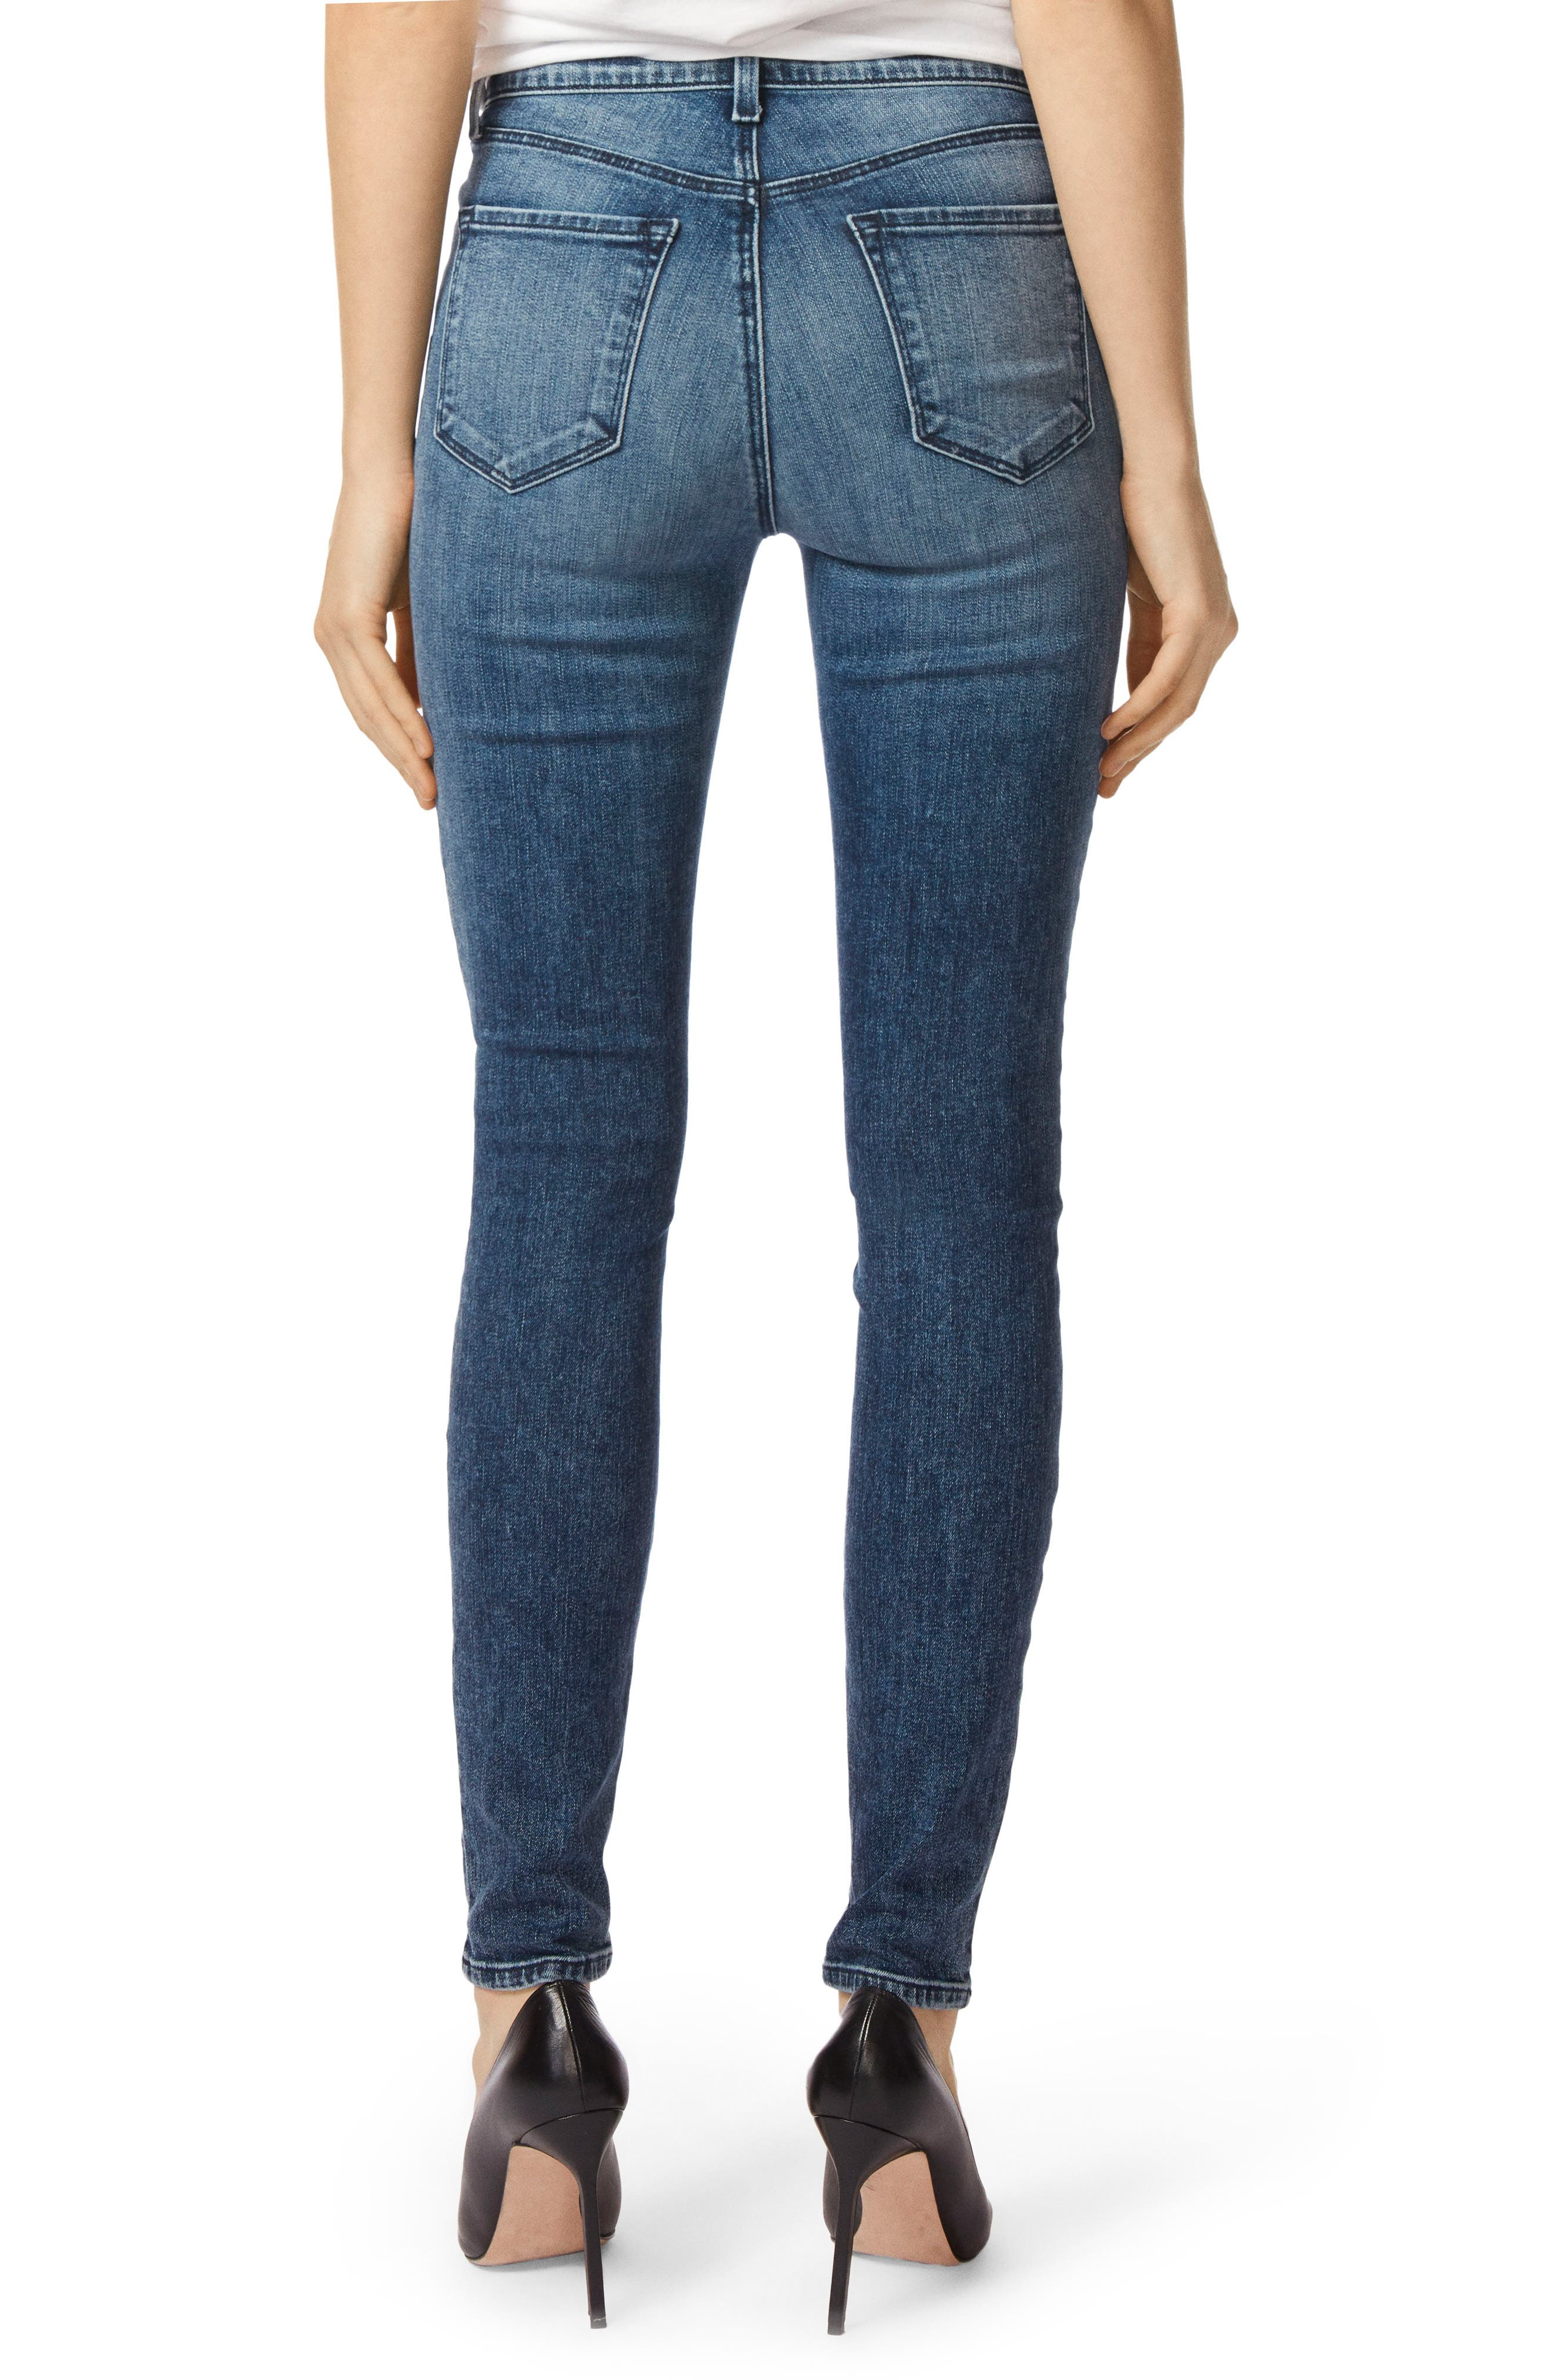 Maria High Waist Skinny Jeans,                             Alternate thumbnail 2, color,                             Moonstruck